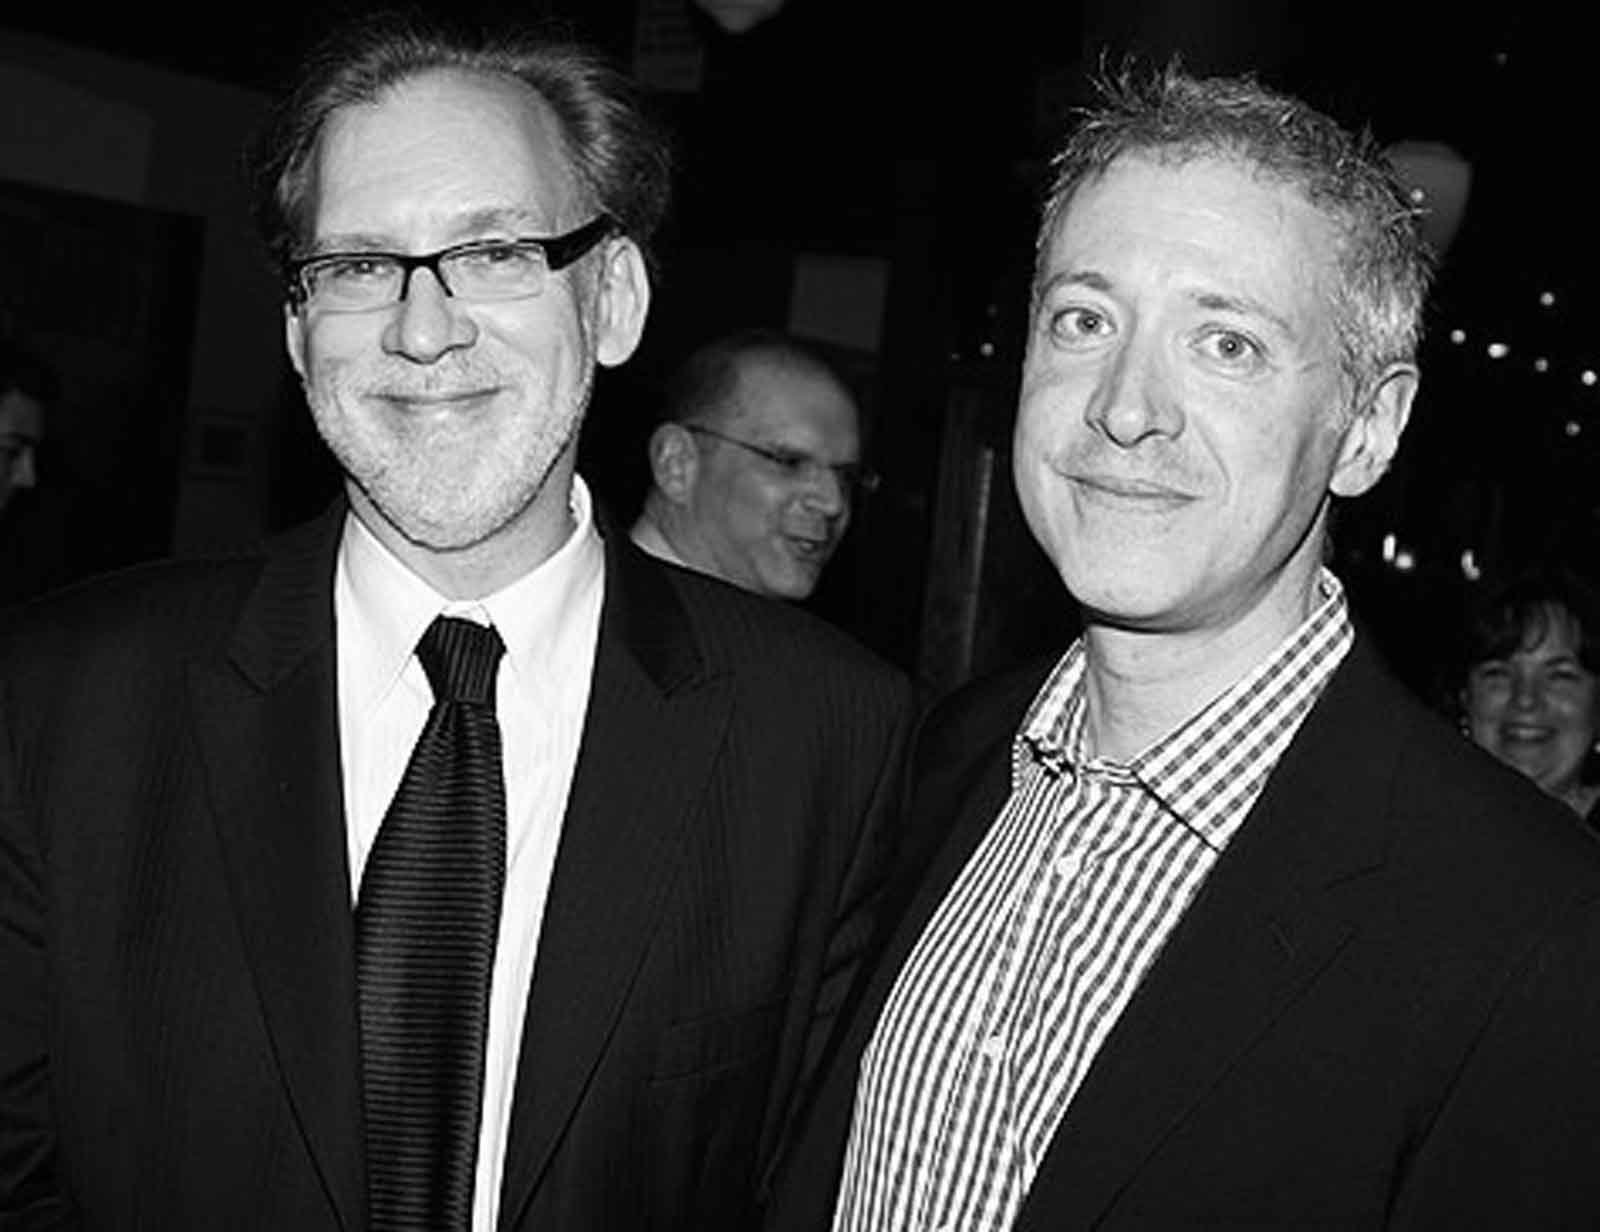 Black and white photo of Michael Korie and Scott Frankel, both wearing blazers.